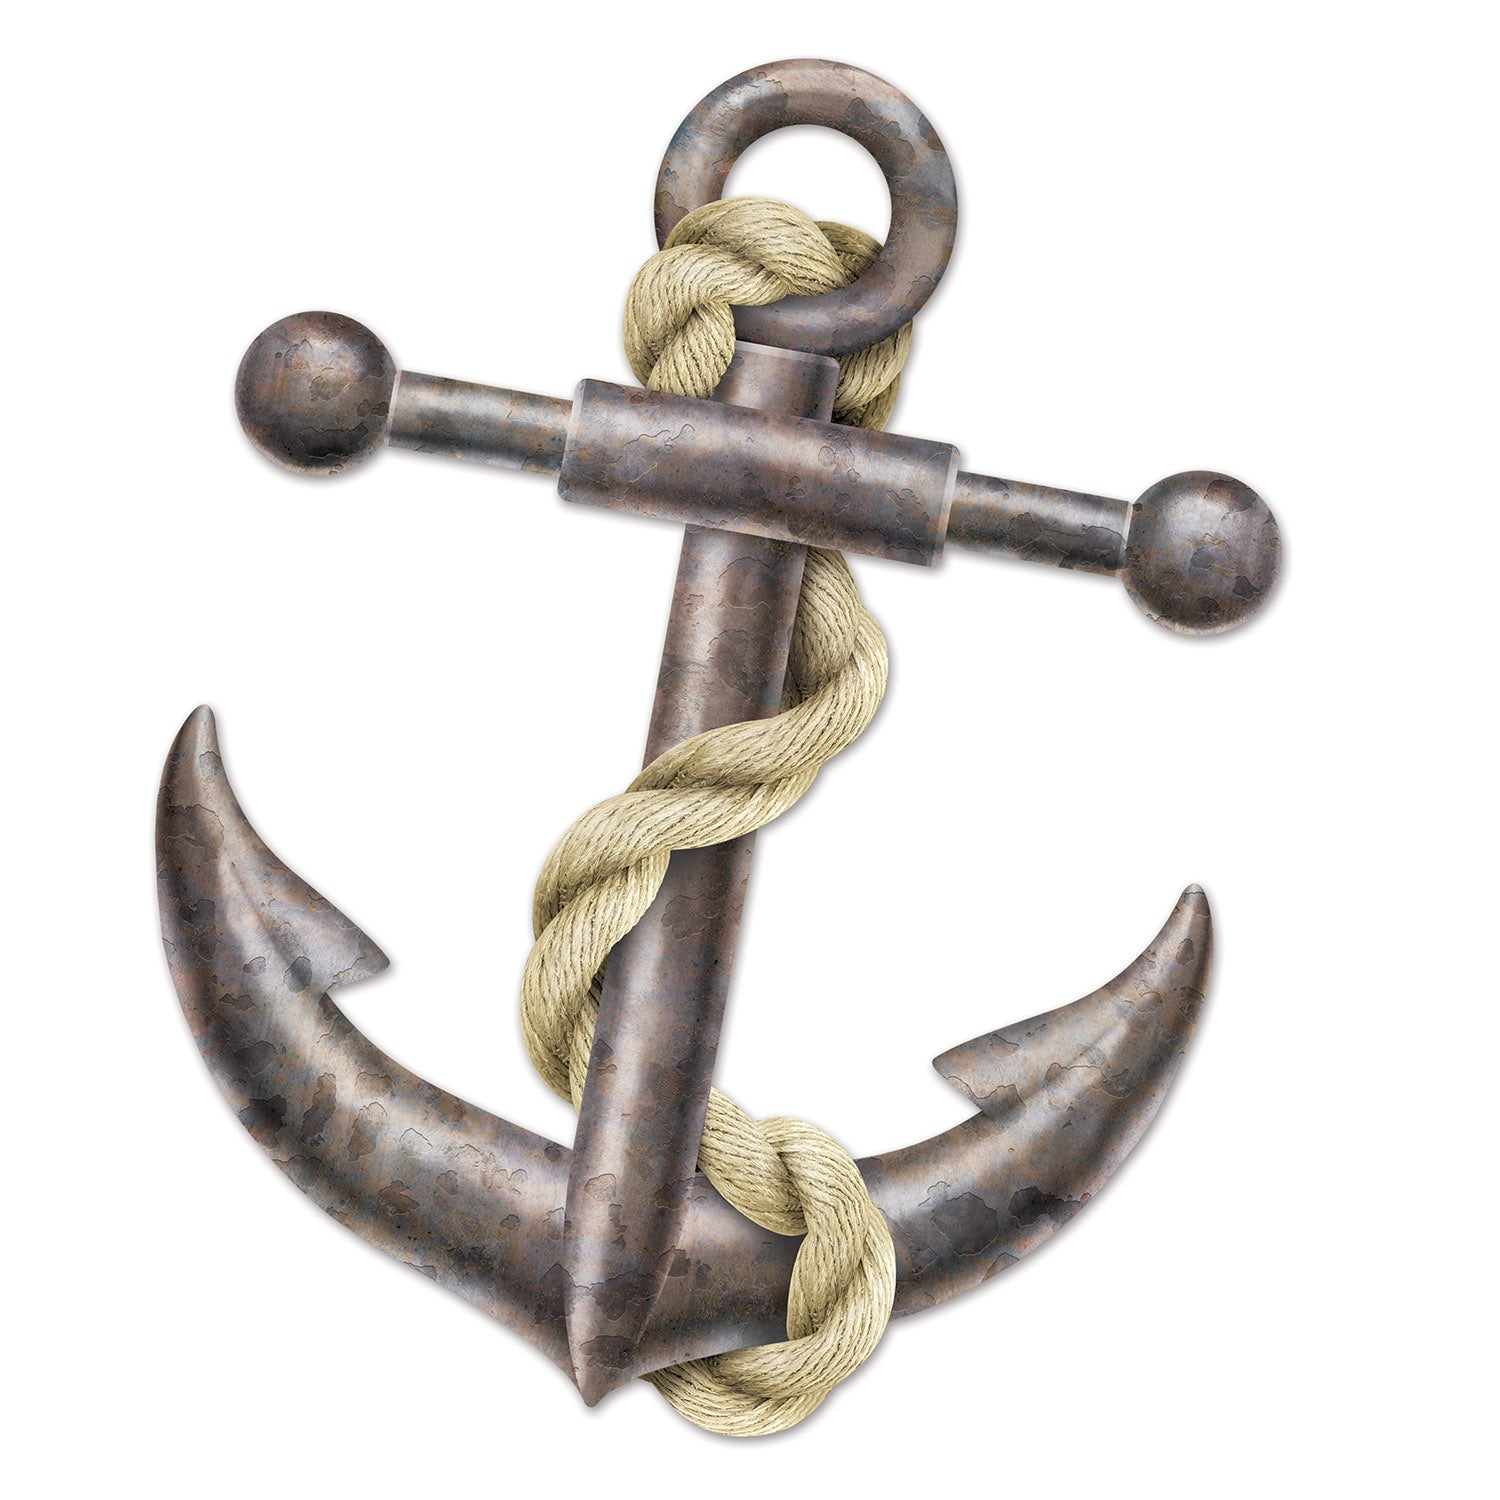 Jointed Anchor by Beistle - Nautical Theme Decorations